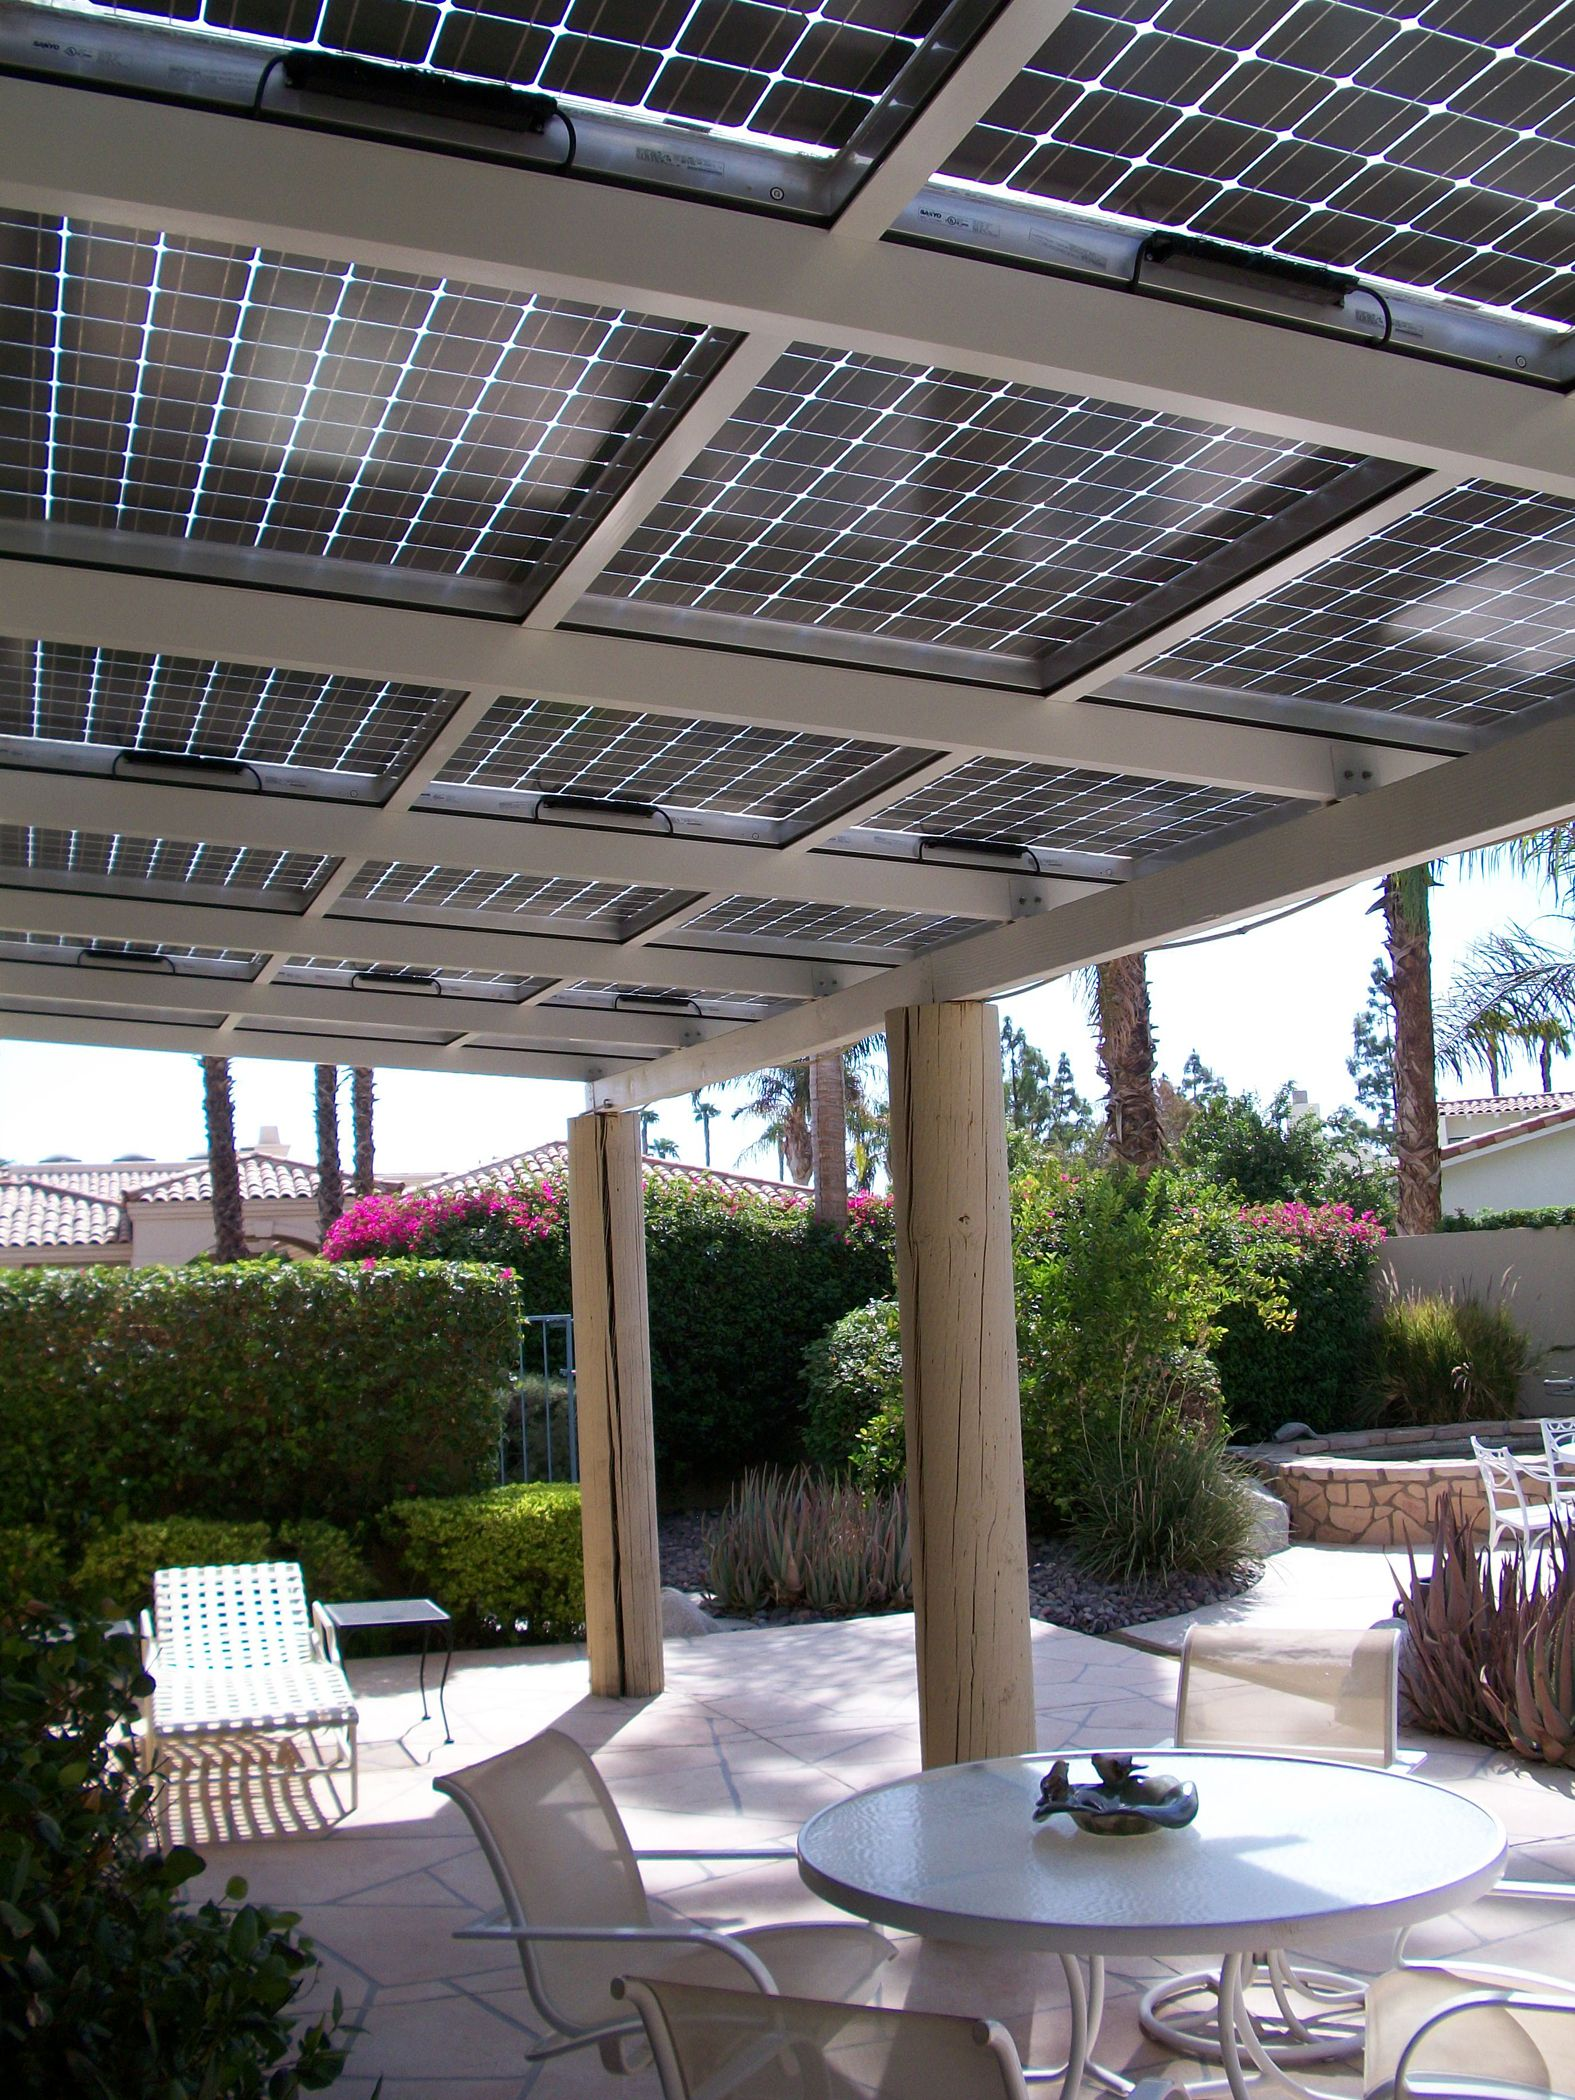 Use Pv Solar Panels To Shade A Patio Or A Carport This